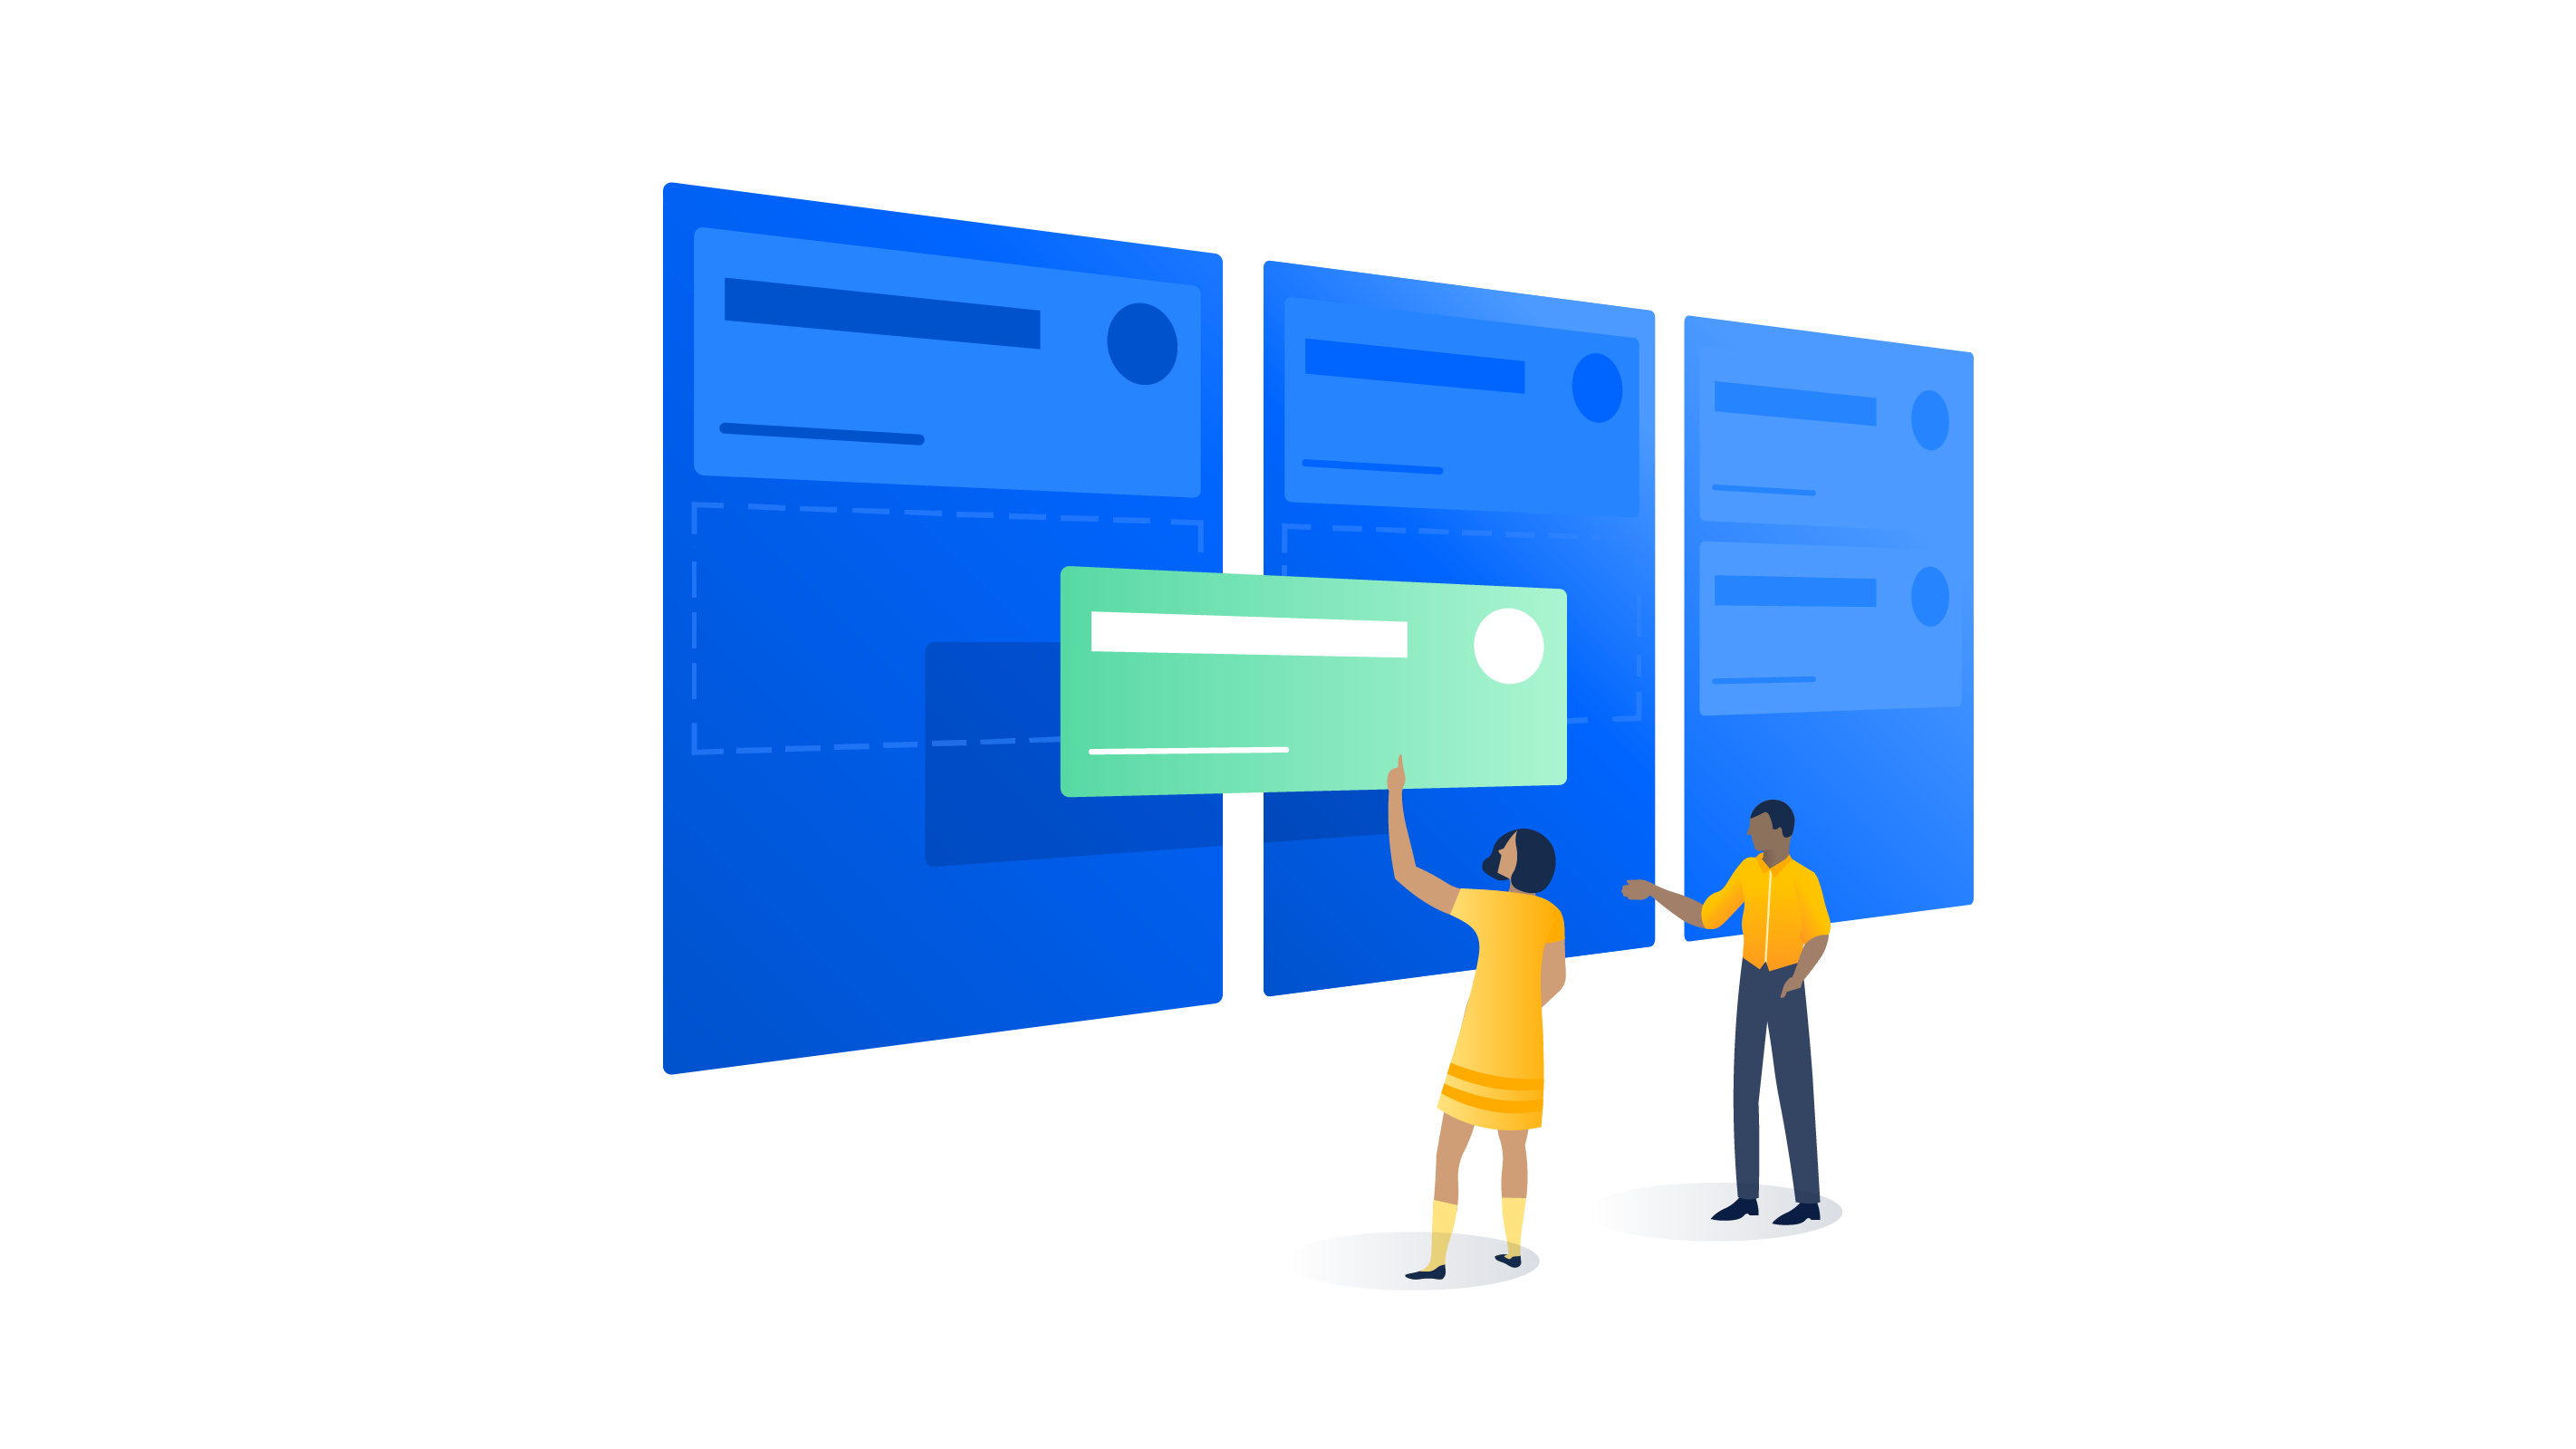 Track your processes and move forward with JIRA Core